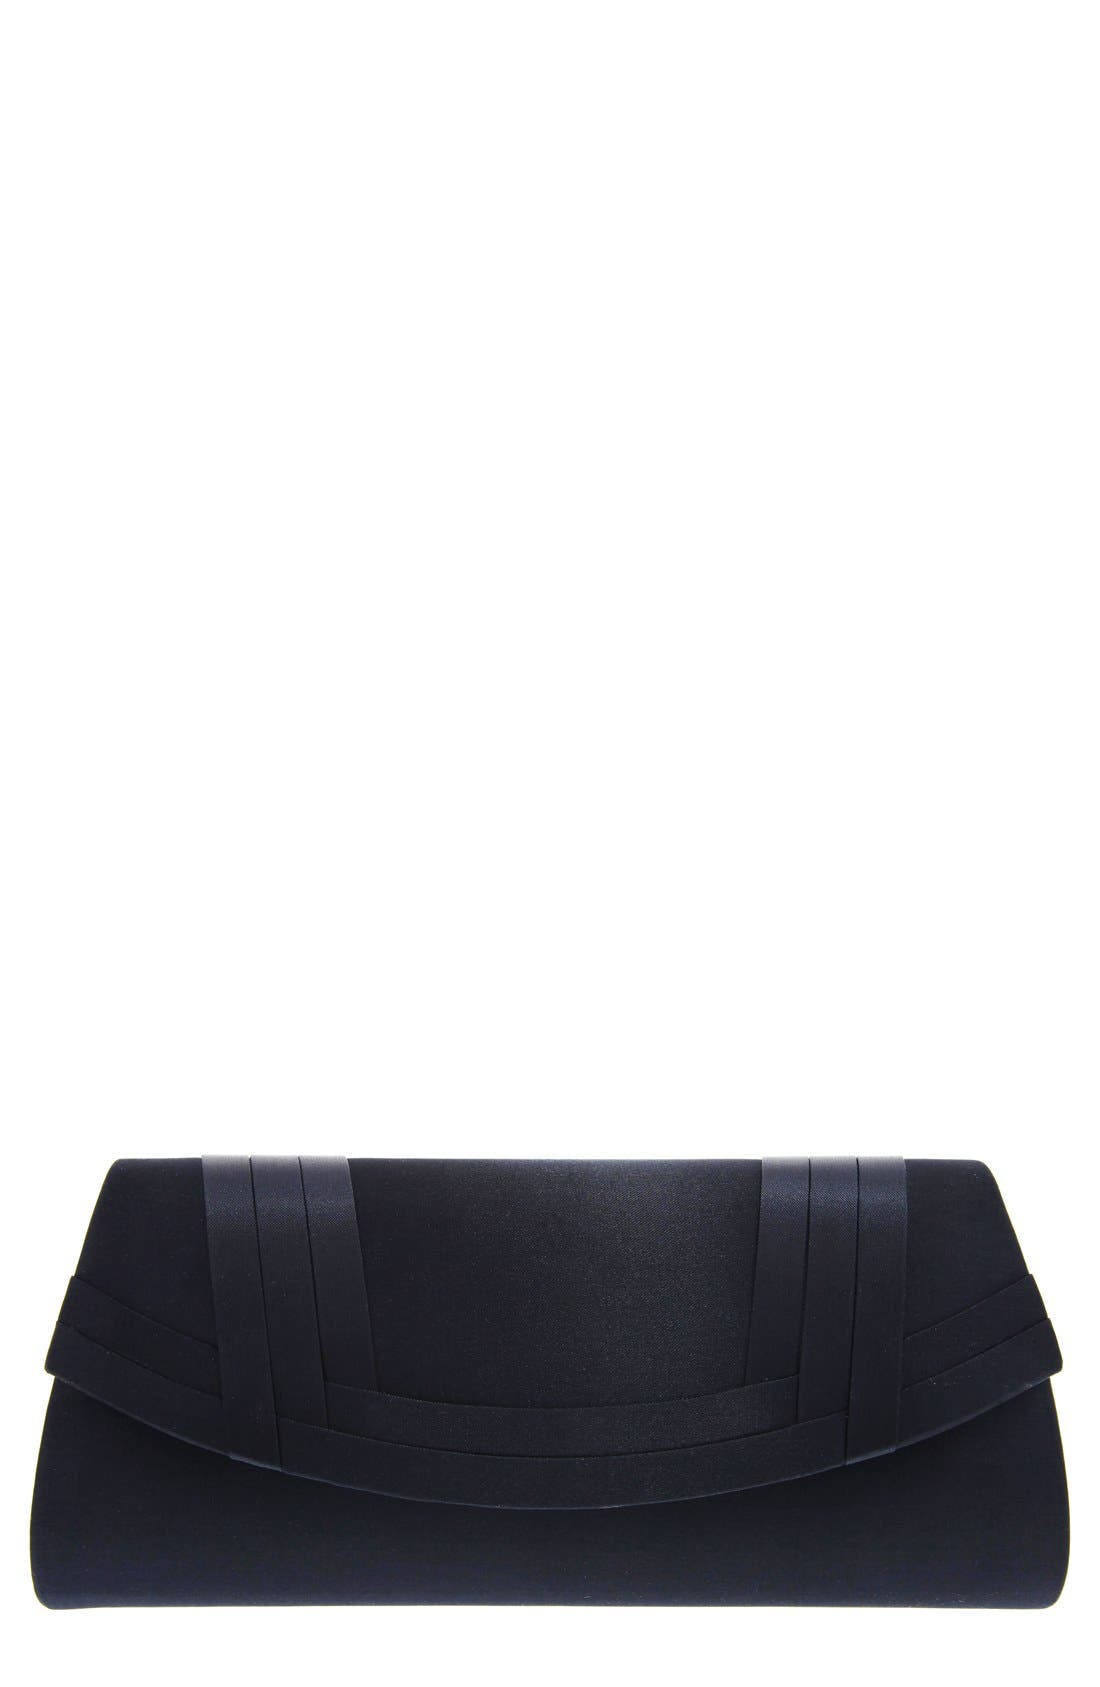 Nina Avis Pleated Classic Clutch